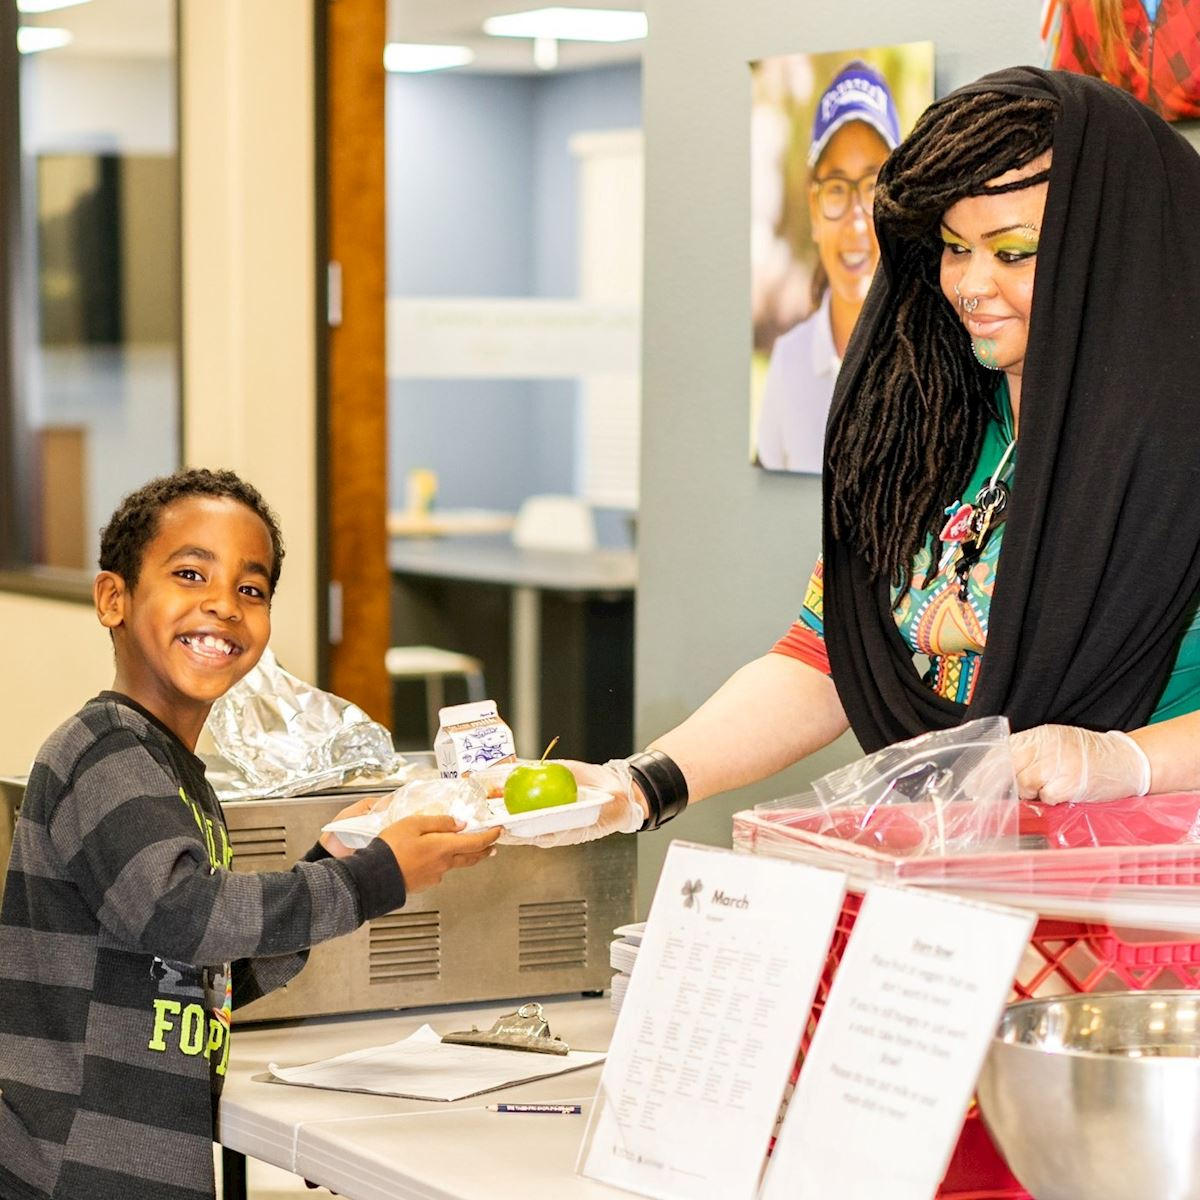 Image for FOOD: Pro Kids Food Distribution